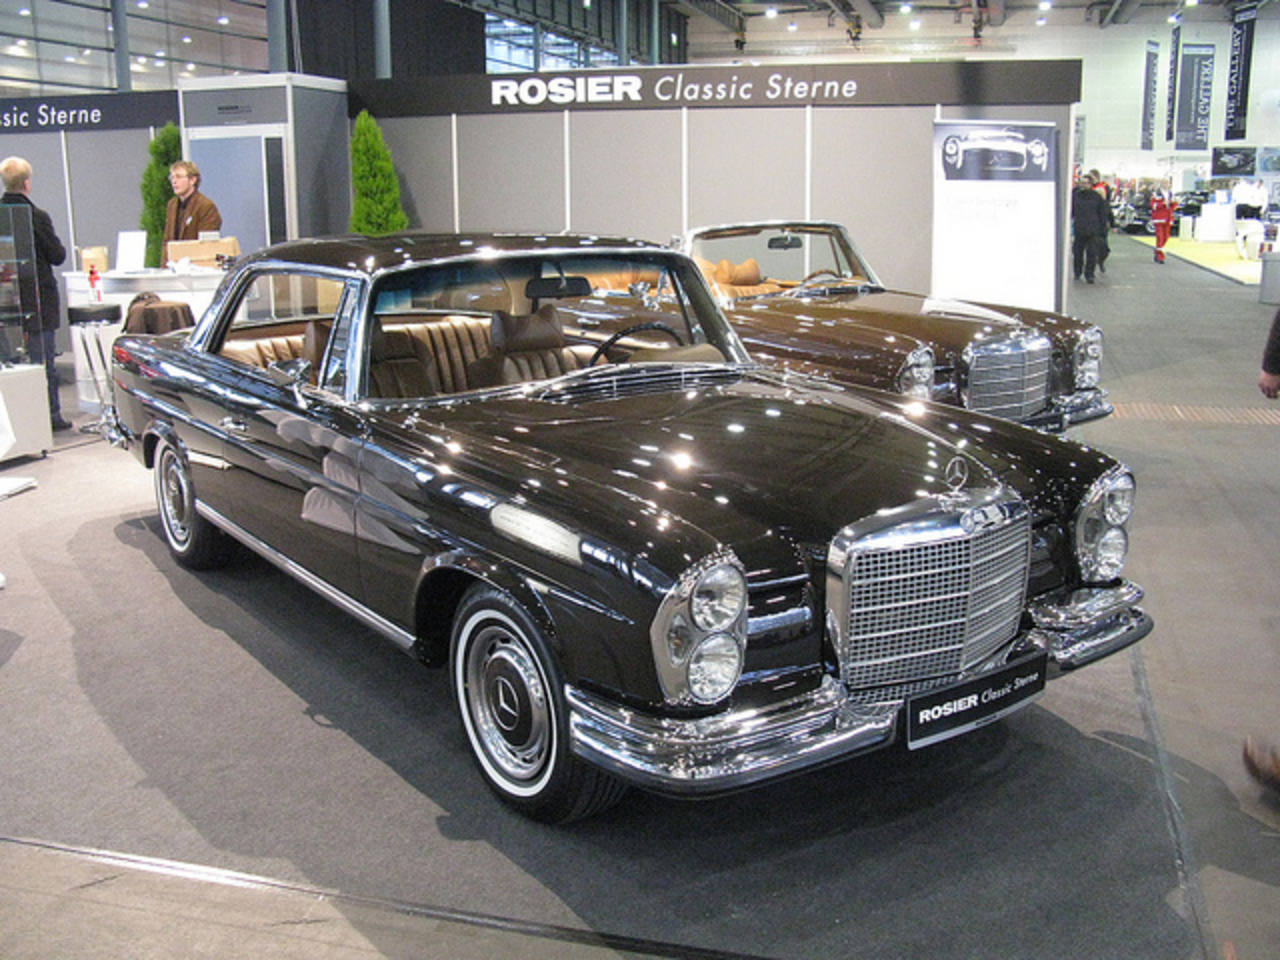 Mercedes-Benz 280 SE 3.5 Coupé | Flickr - Photo Sharing!